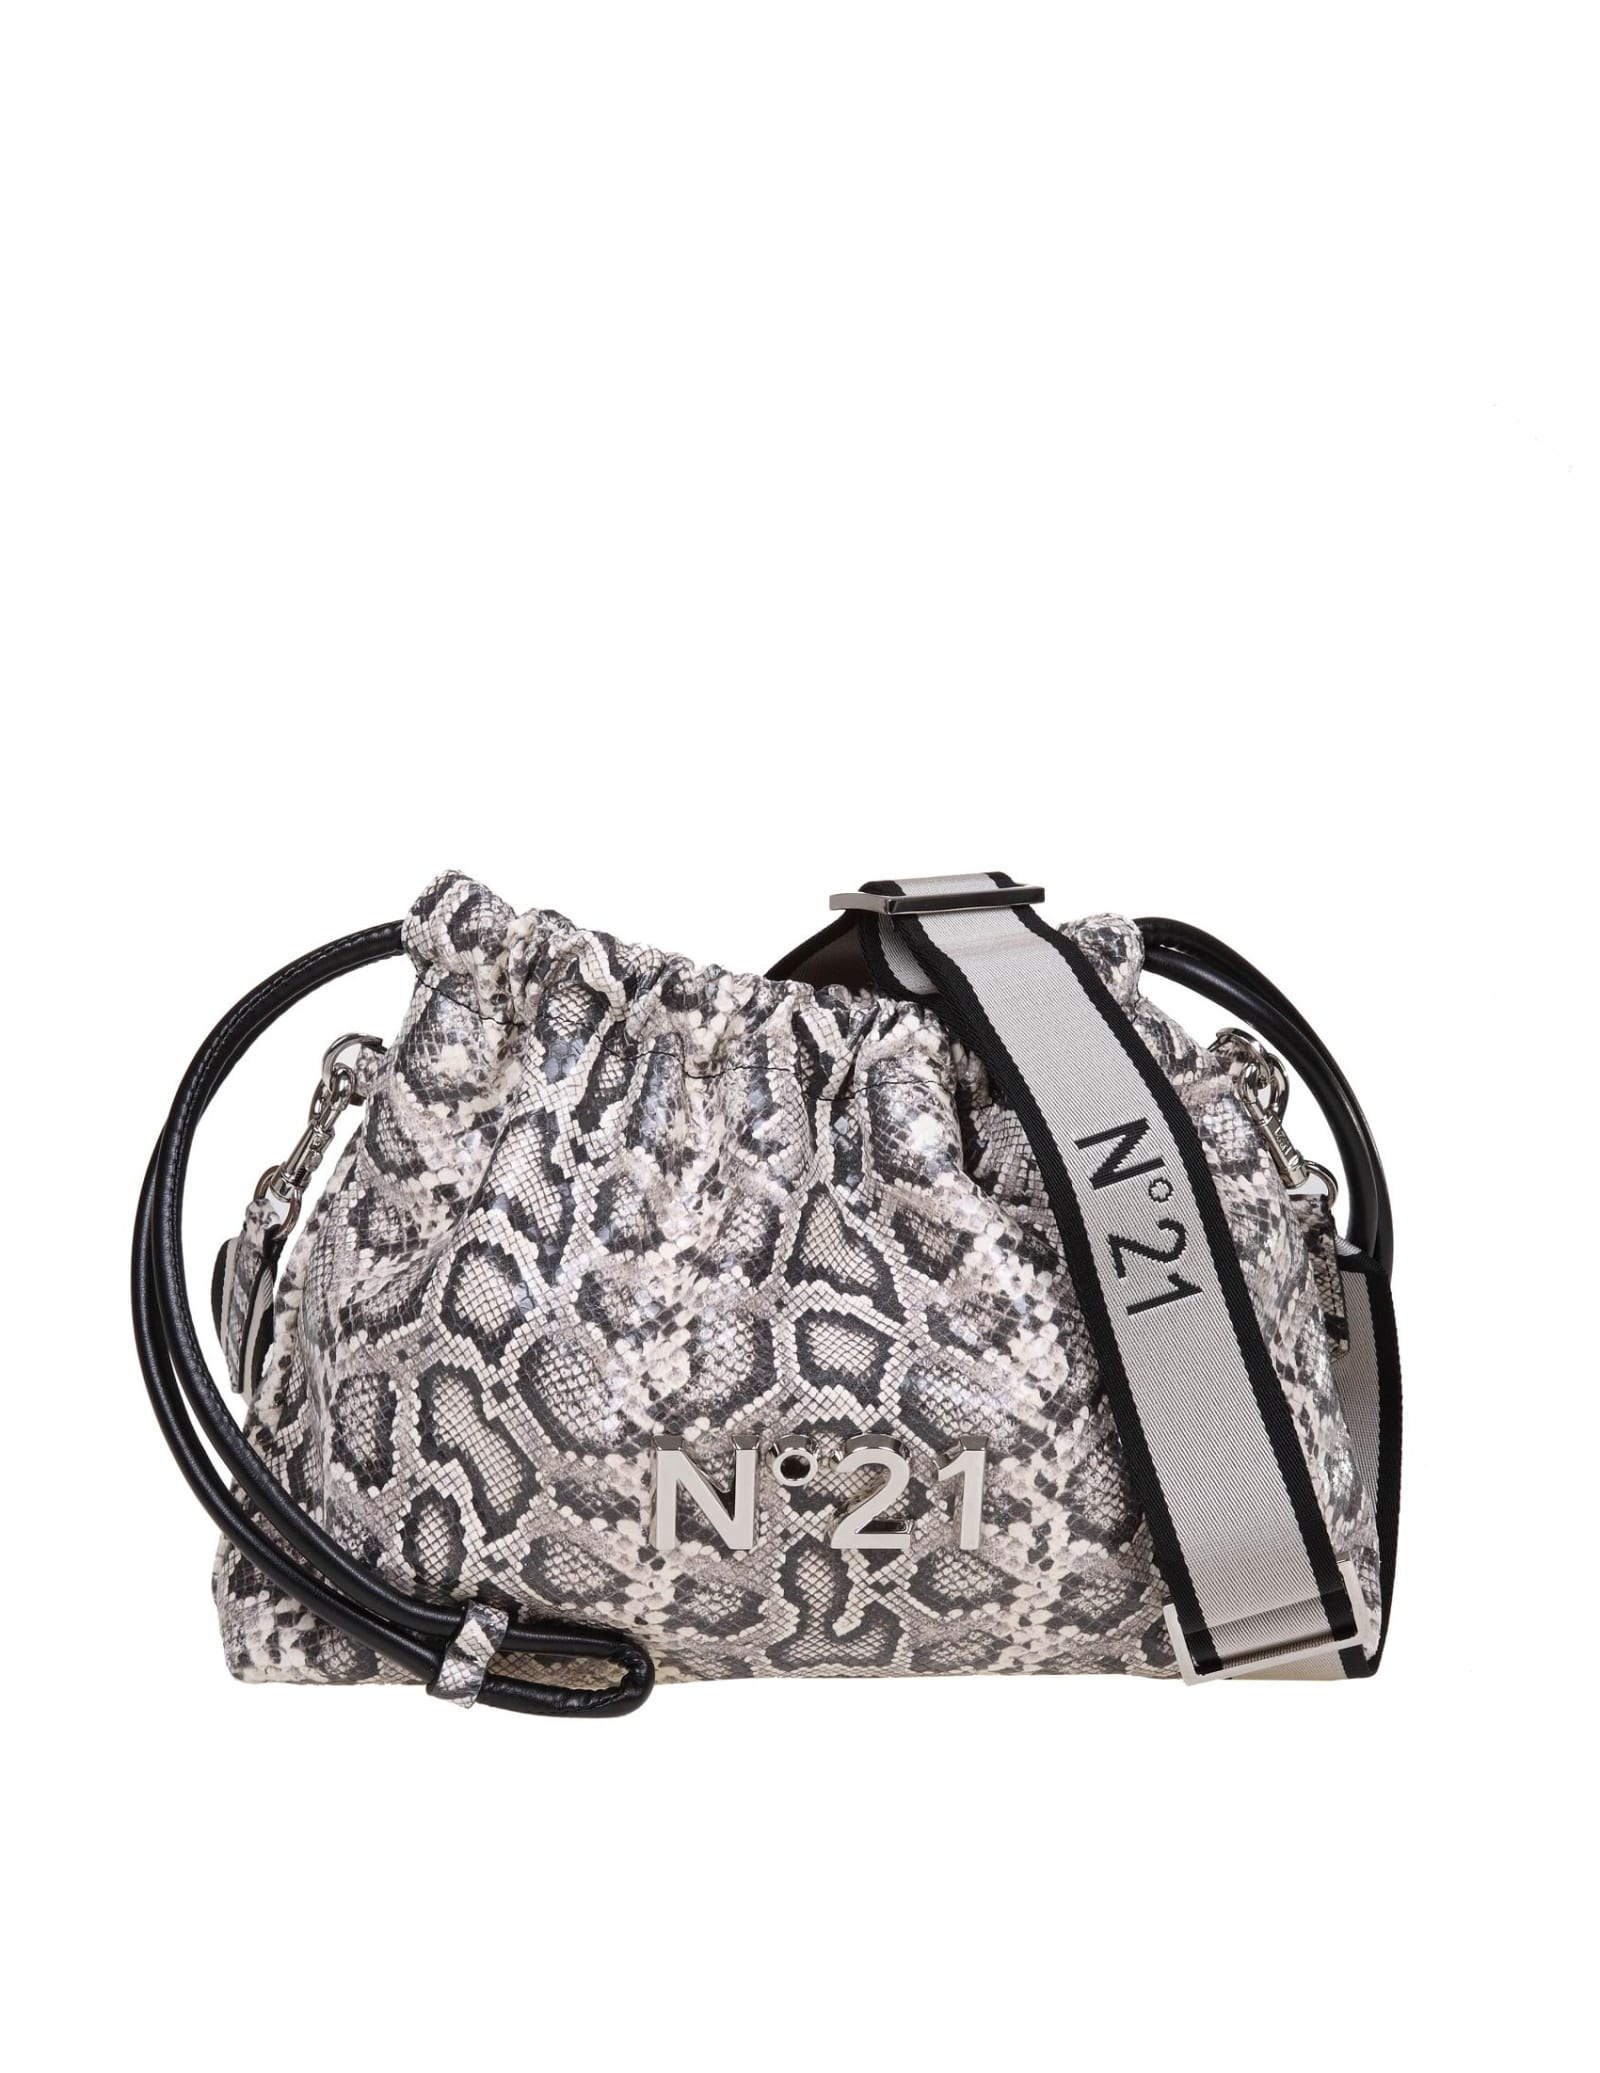 N ° 21 Eva Coulisse Bag With Animalier Print